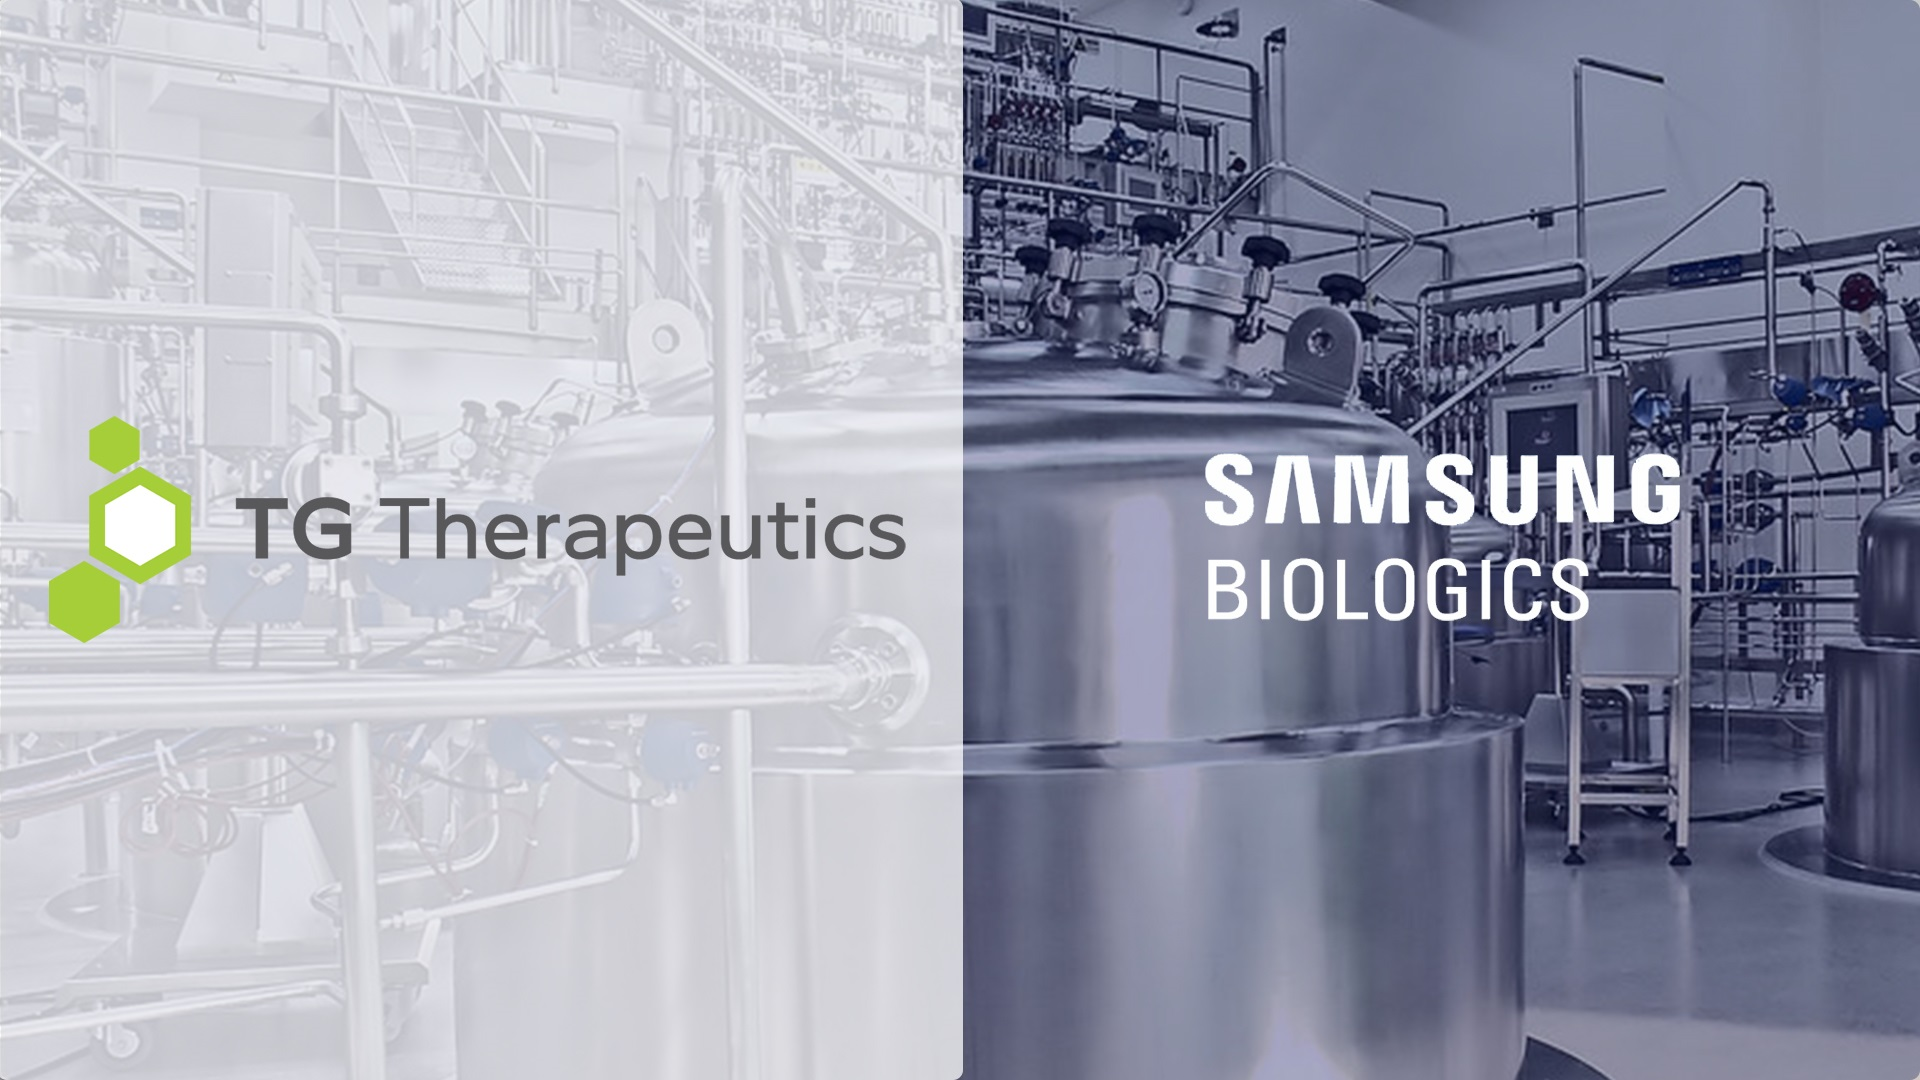 Samsung Biologics and TG Therapeutics Expand Collaboration for the Large Scale Manufacture of Ublituximab